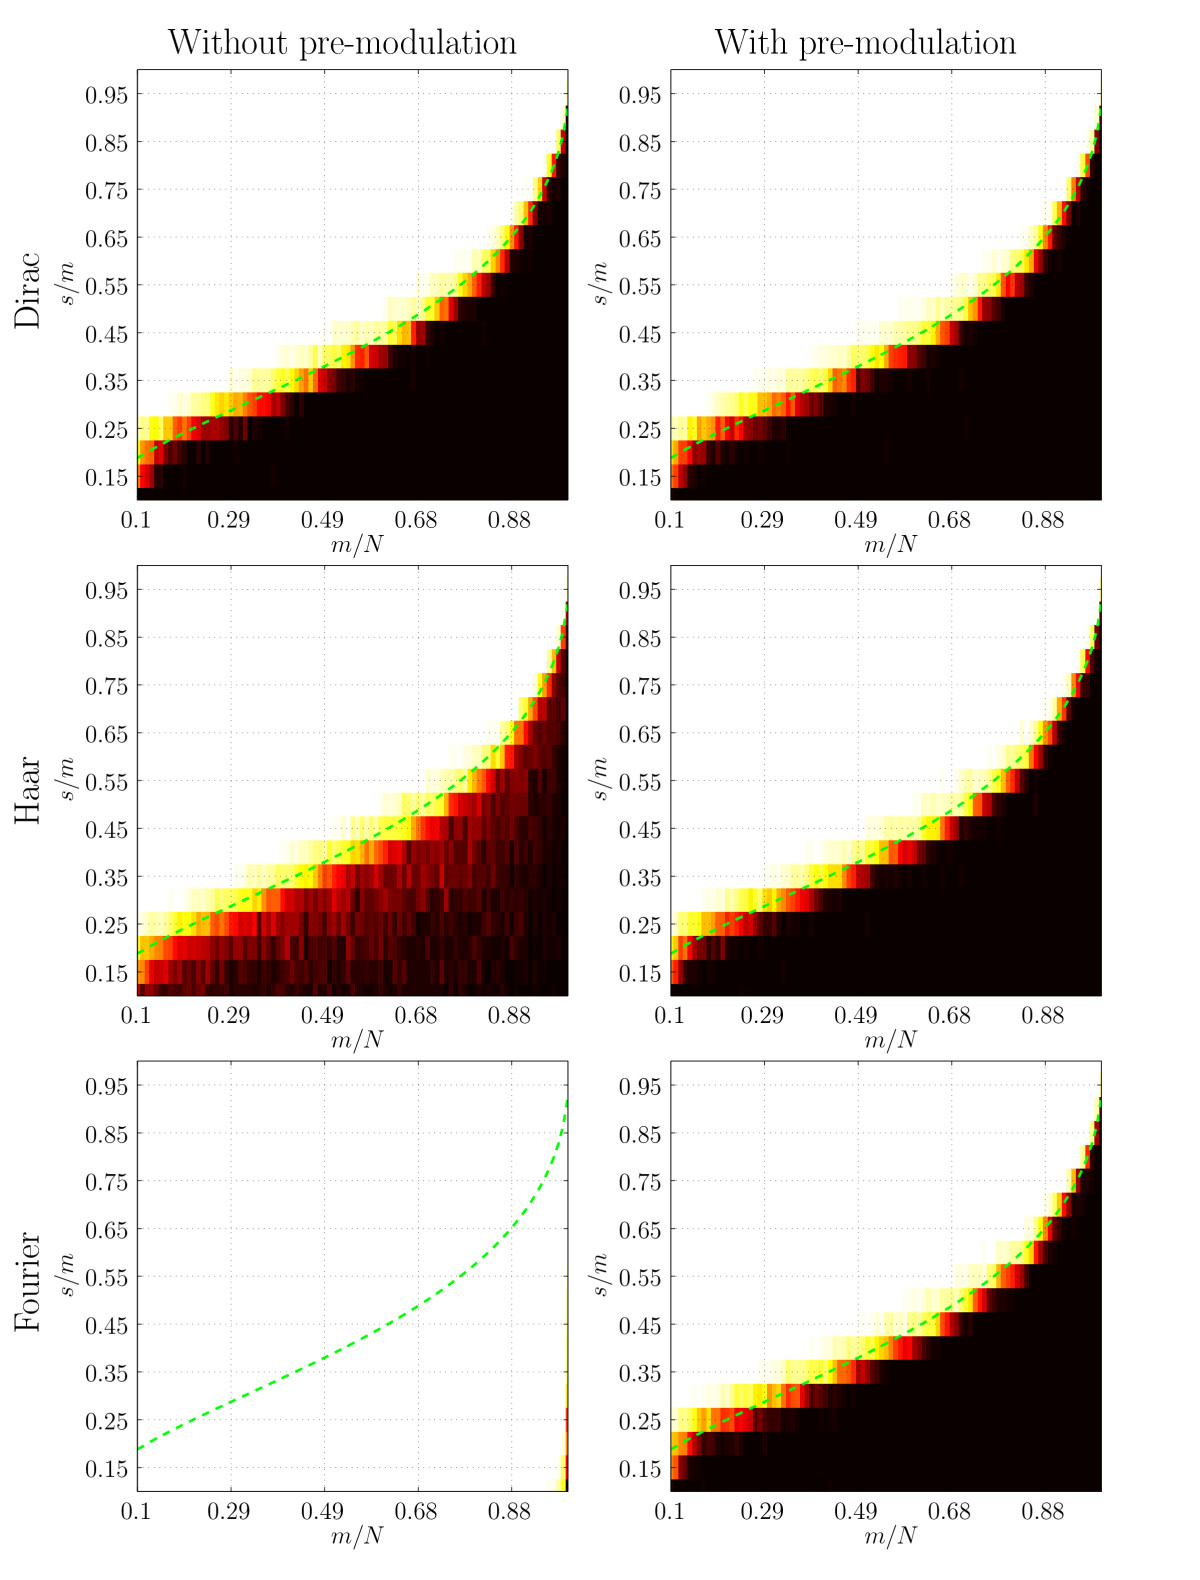 http://static-content.springer.com/image/art%3A10.1186%2F1687-6180-2012-6/MediaObjects/13634_2011_Article_229_Fig1_HTML.jpg